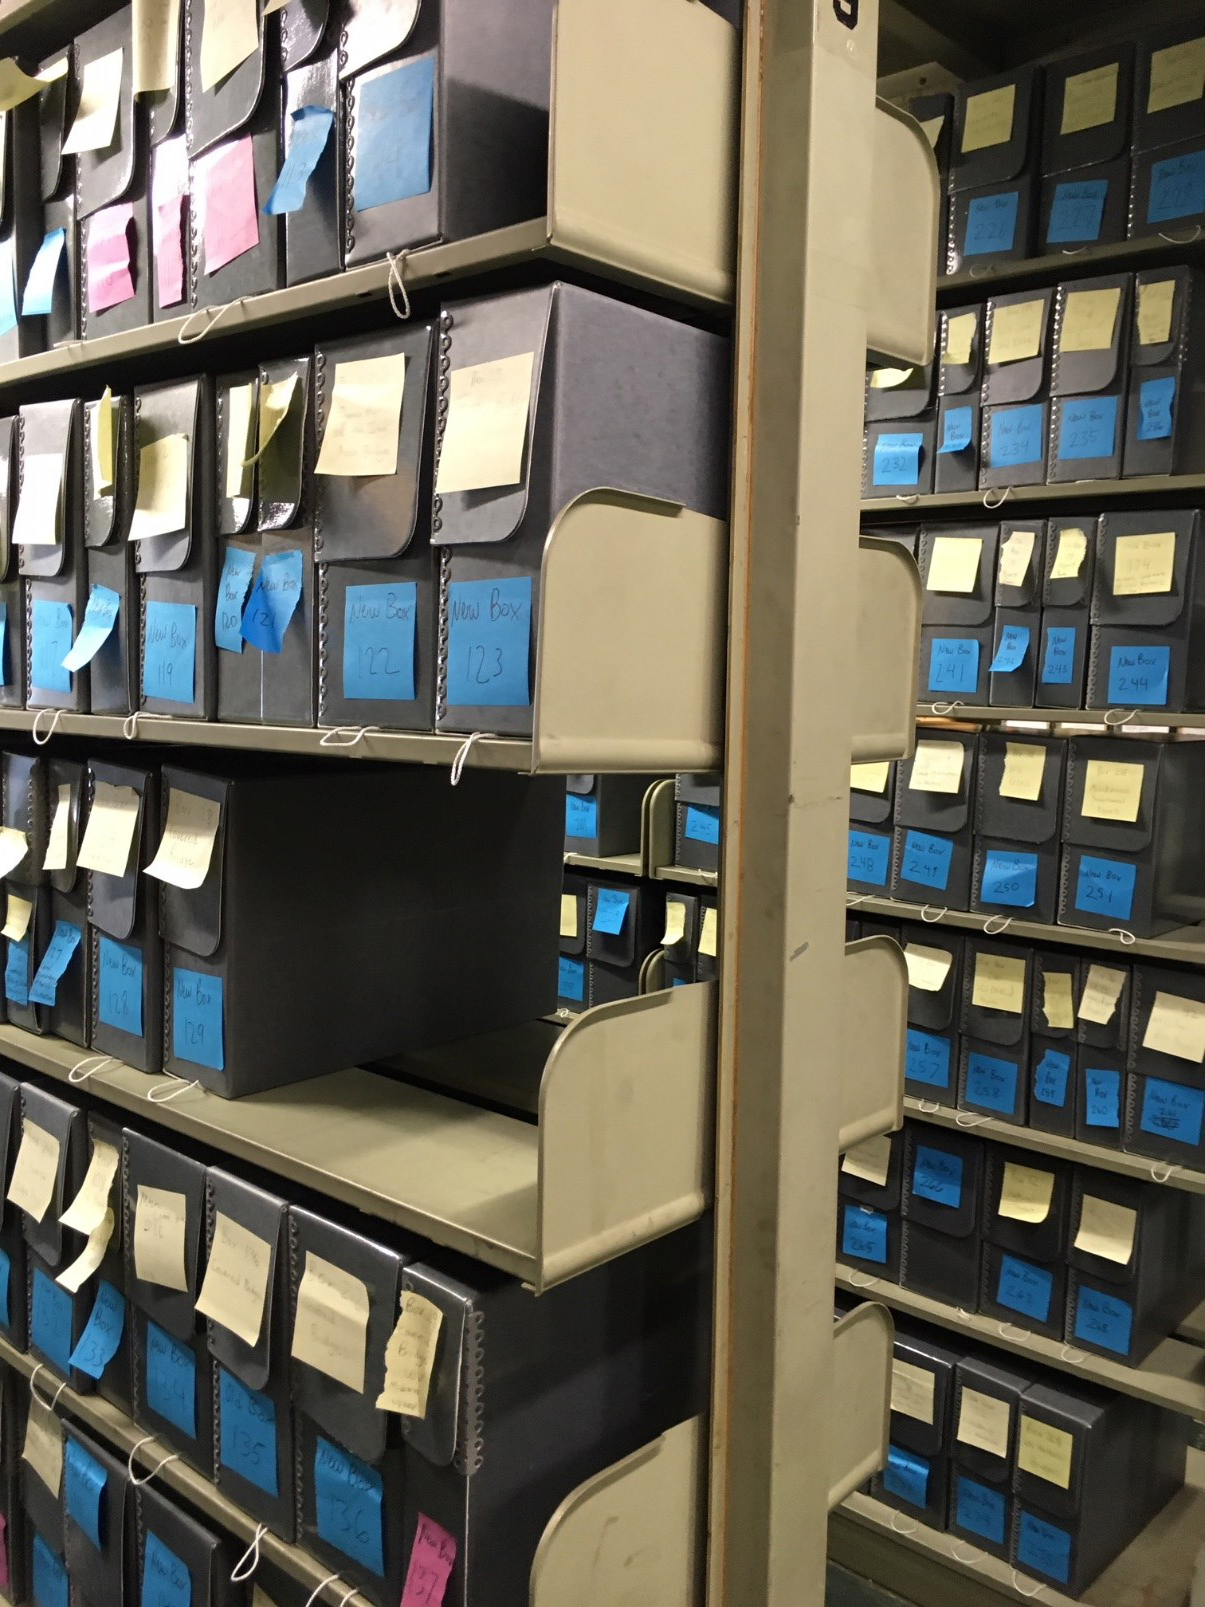 Document cases marked with post it notes, arranged on shelves